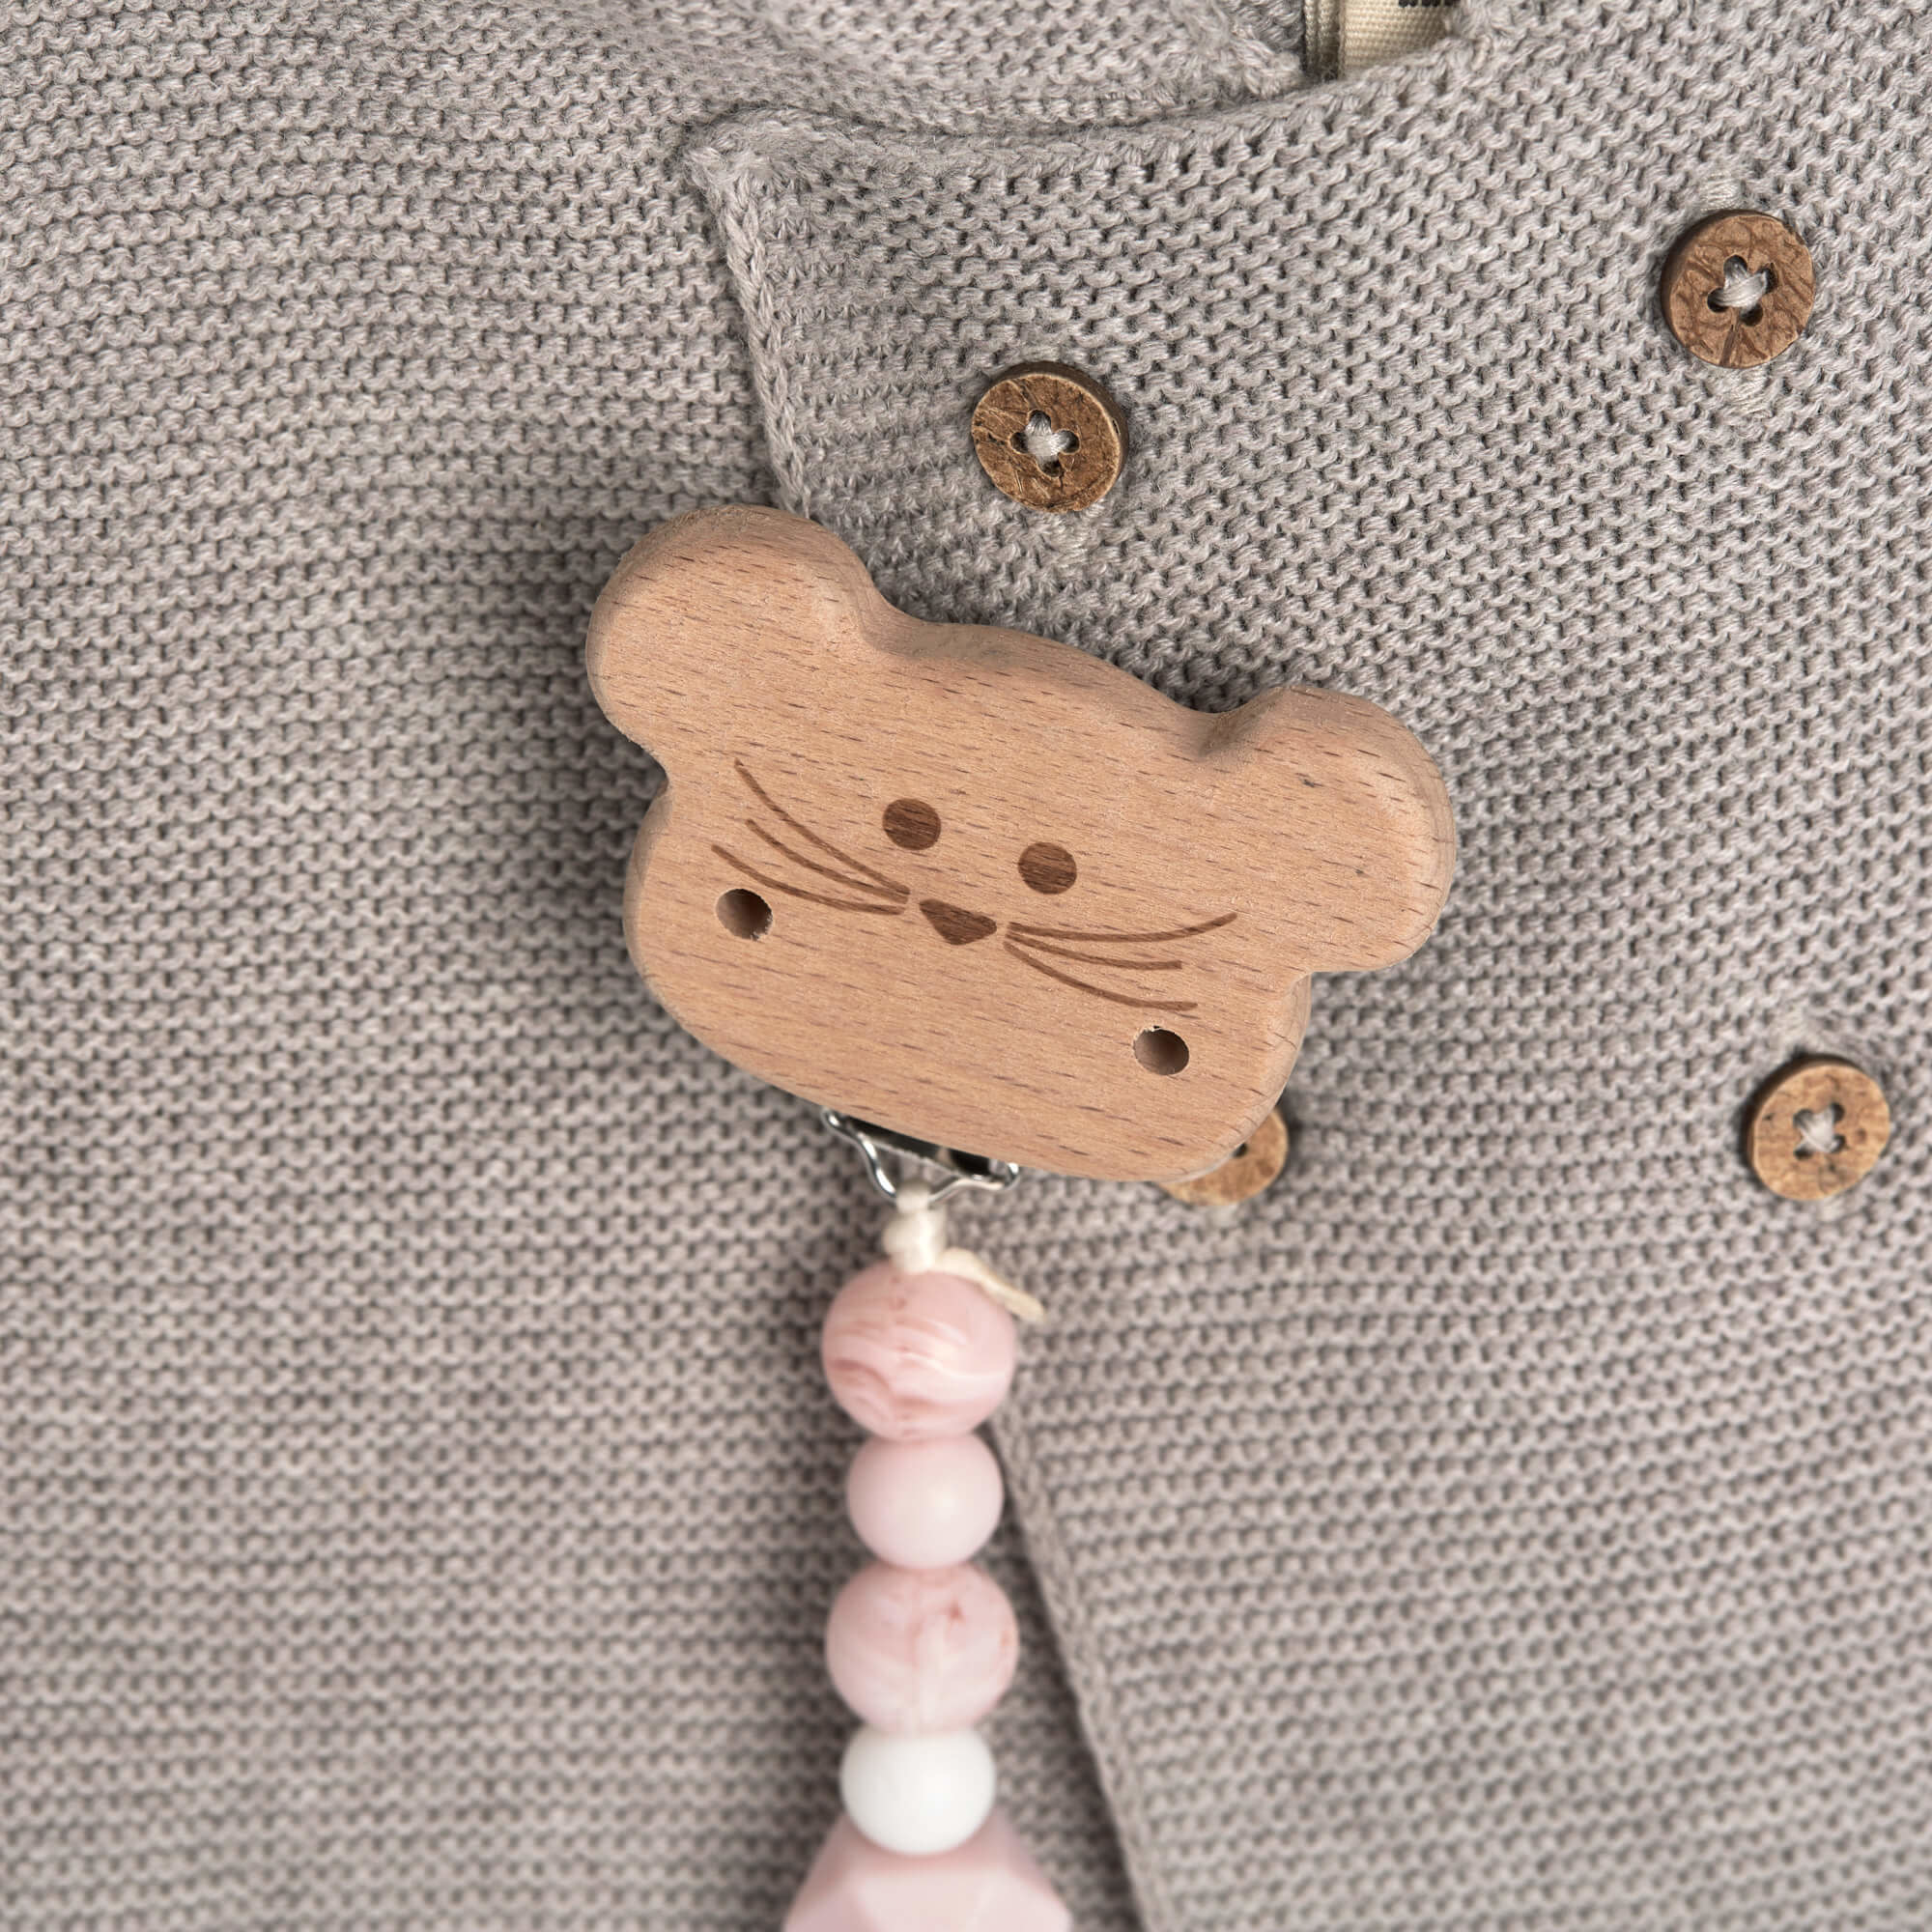 Lassig Scoother Holder Wood/Silicone Little Chums Little Chums Mouse